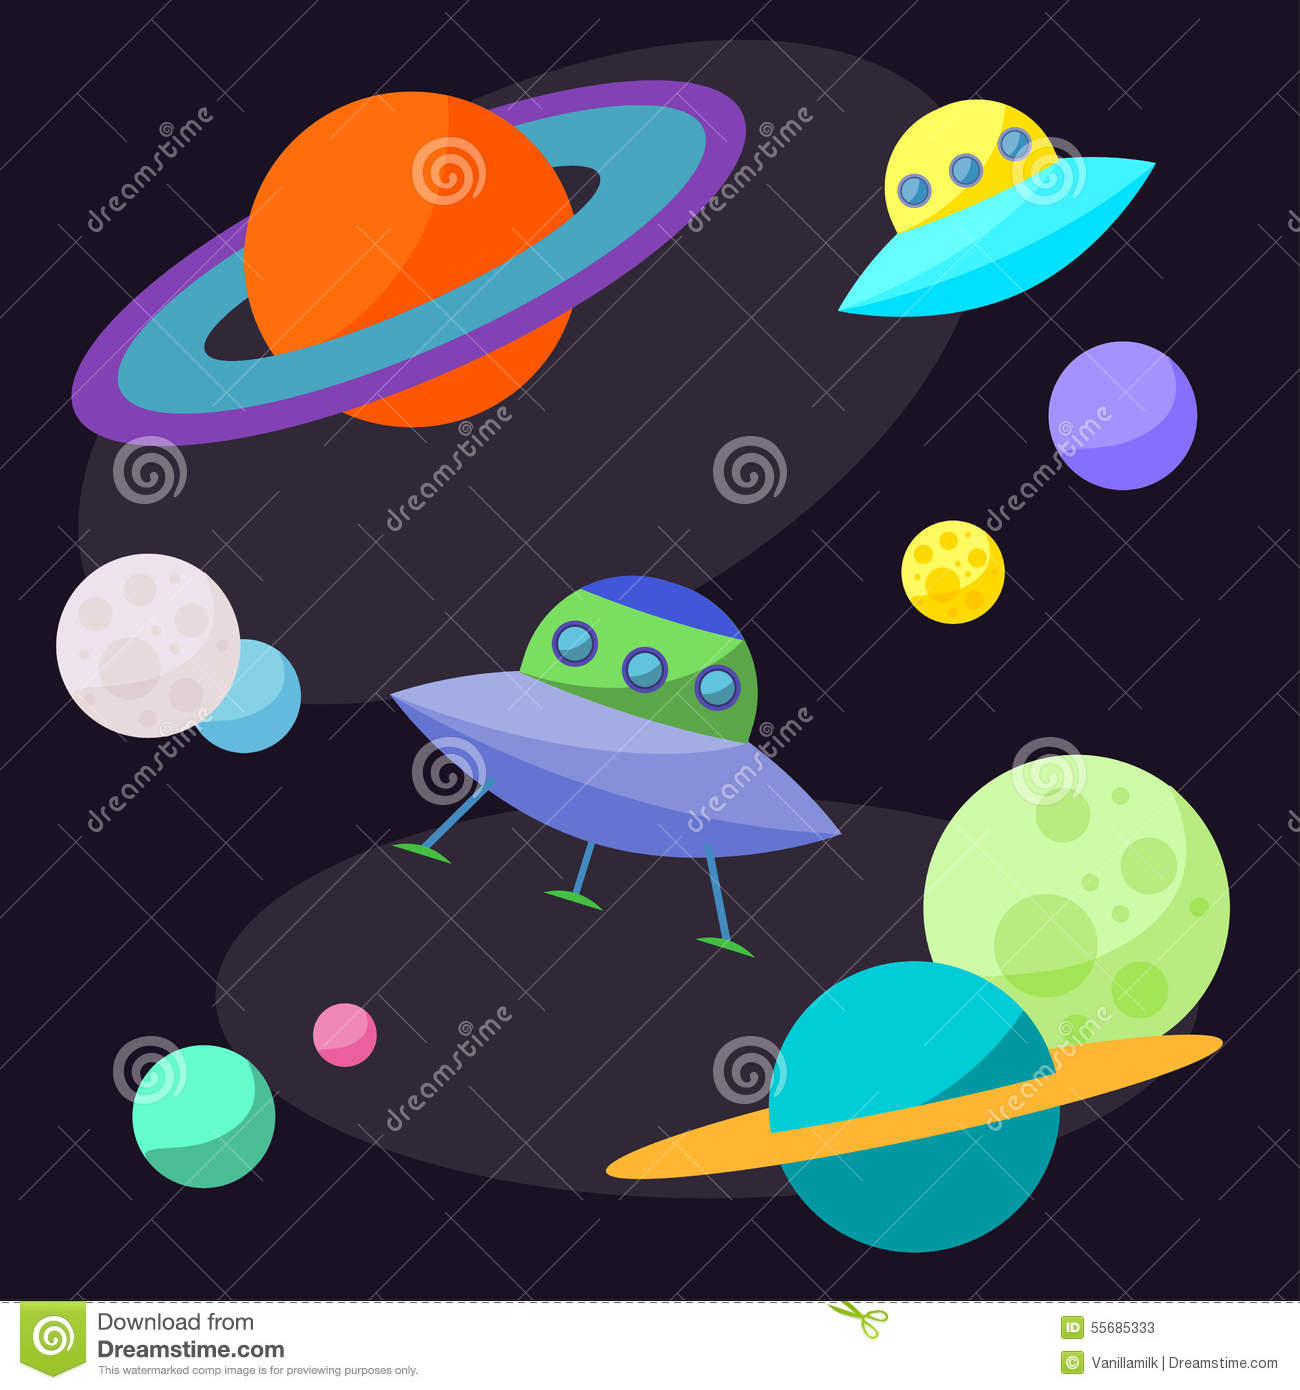 Set planets solar system cartoon style flat icon stock vector image - Space Exploration Banner Vector Illustration